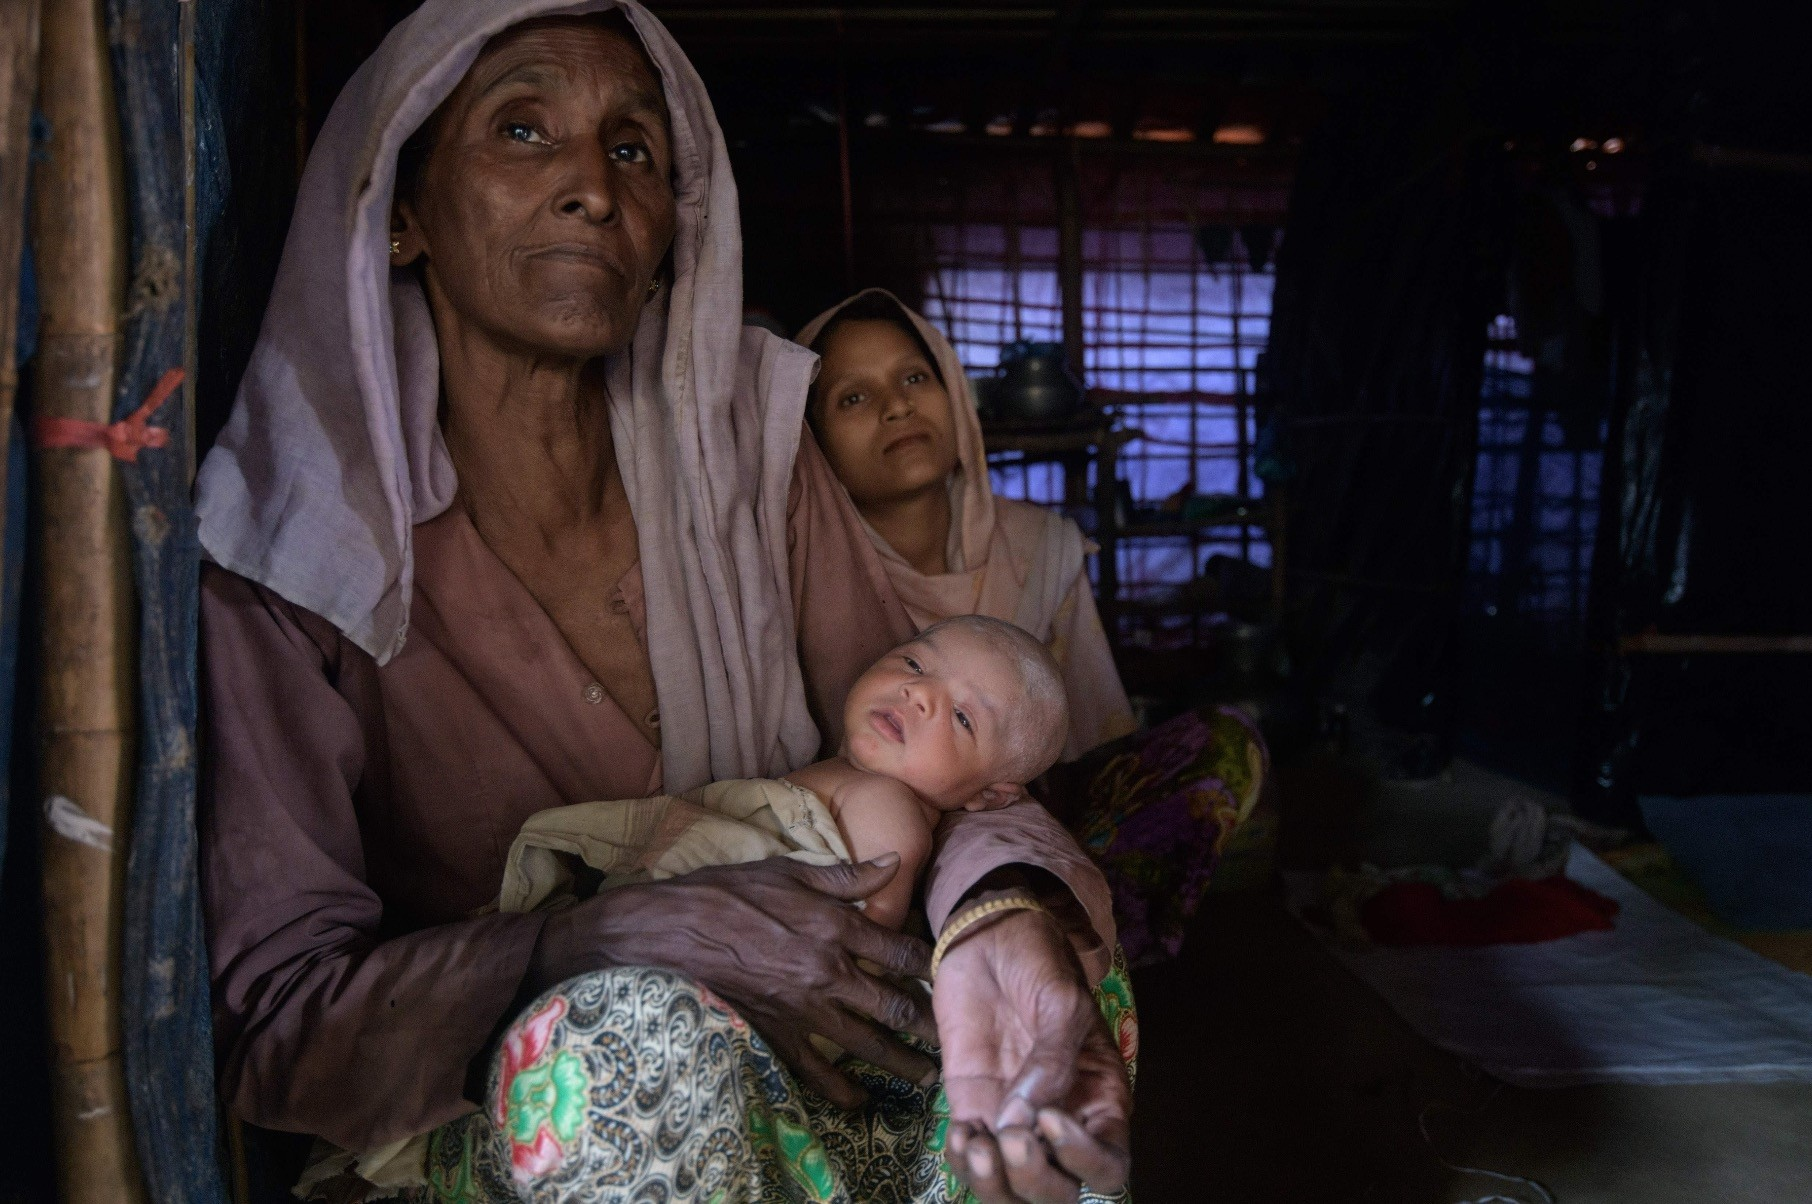 Rohingya refugees at the Thangkhali refugee camp near Coxu2019s Bazar, Aug. 11.